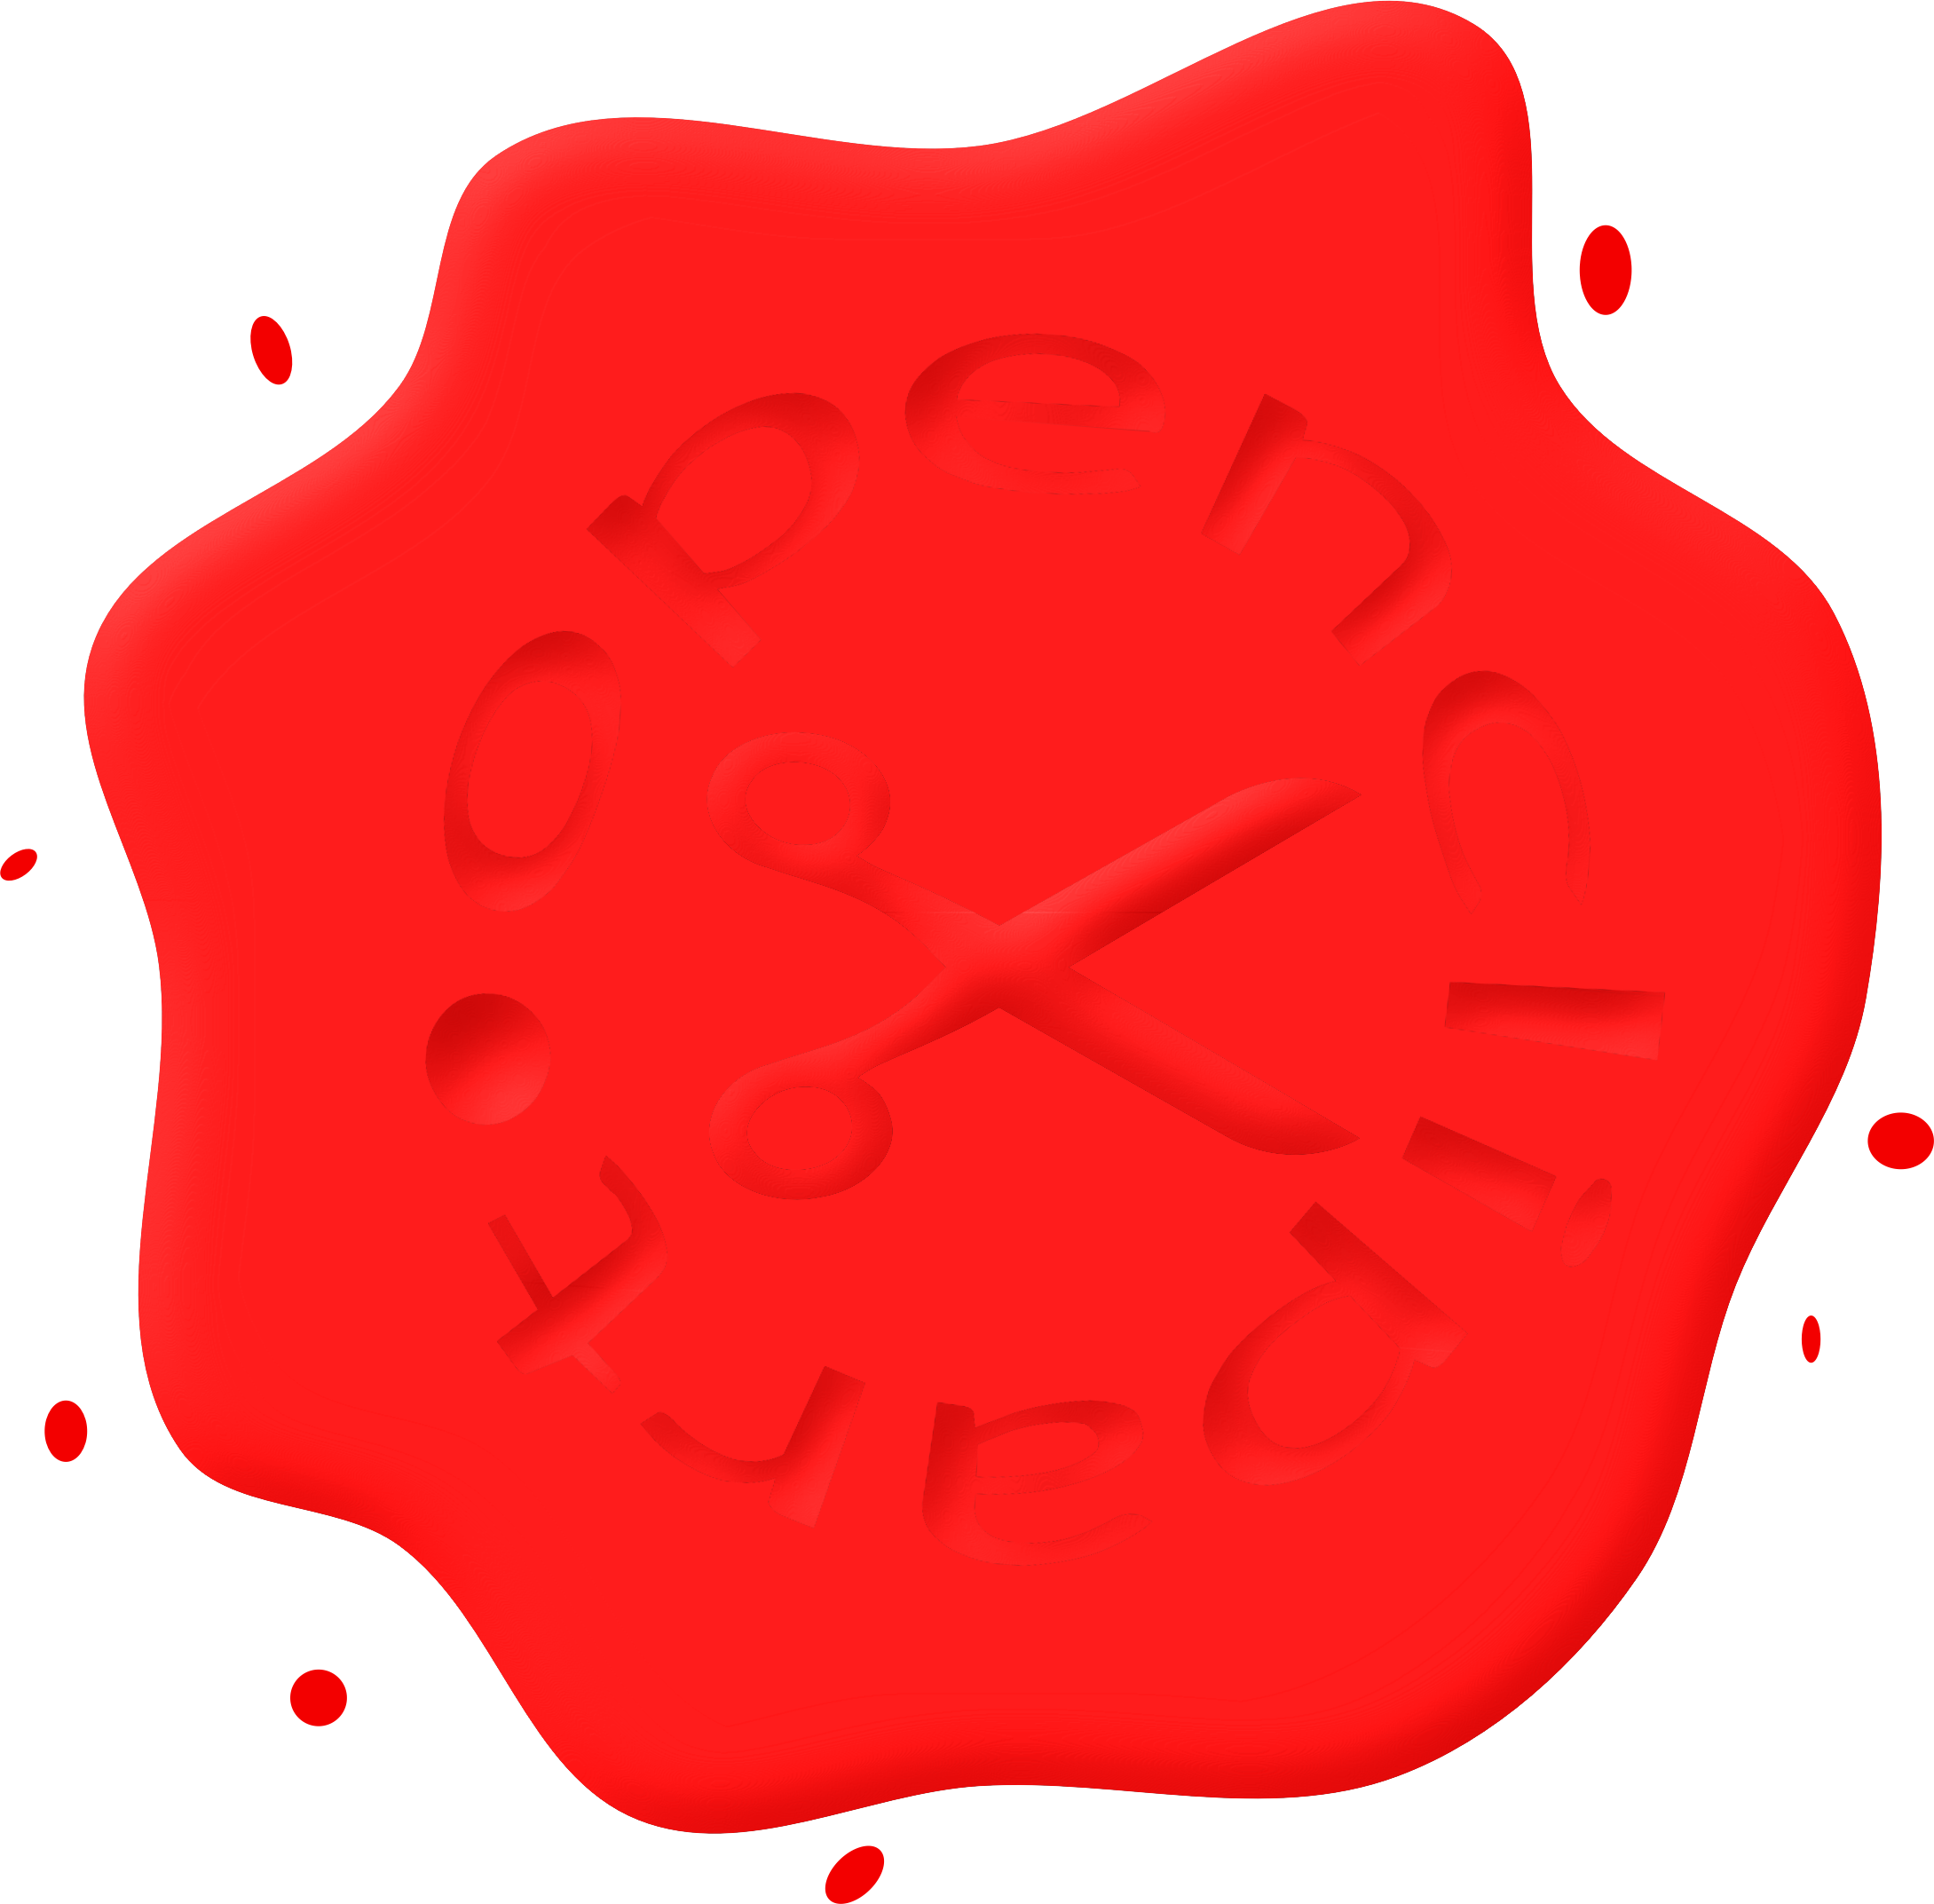 clipart wax seal openclipart #31473